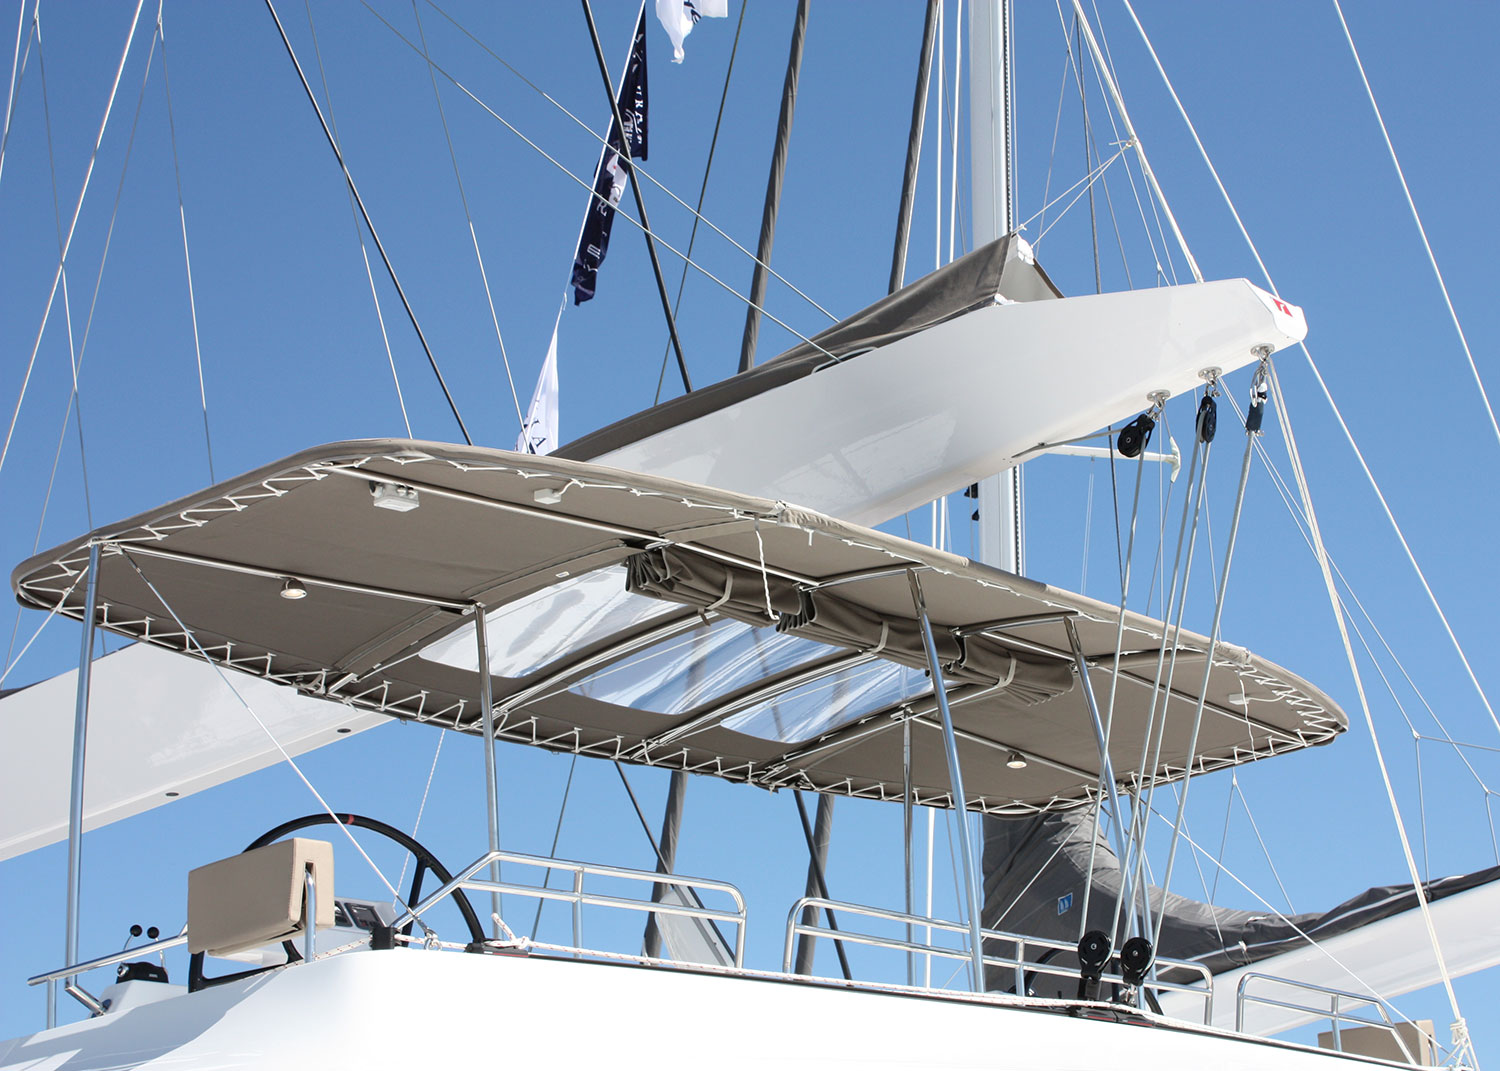 A grey bimini featuring Sunbrella fabric offers shade on a sail boat.